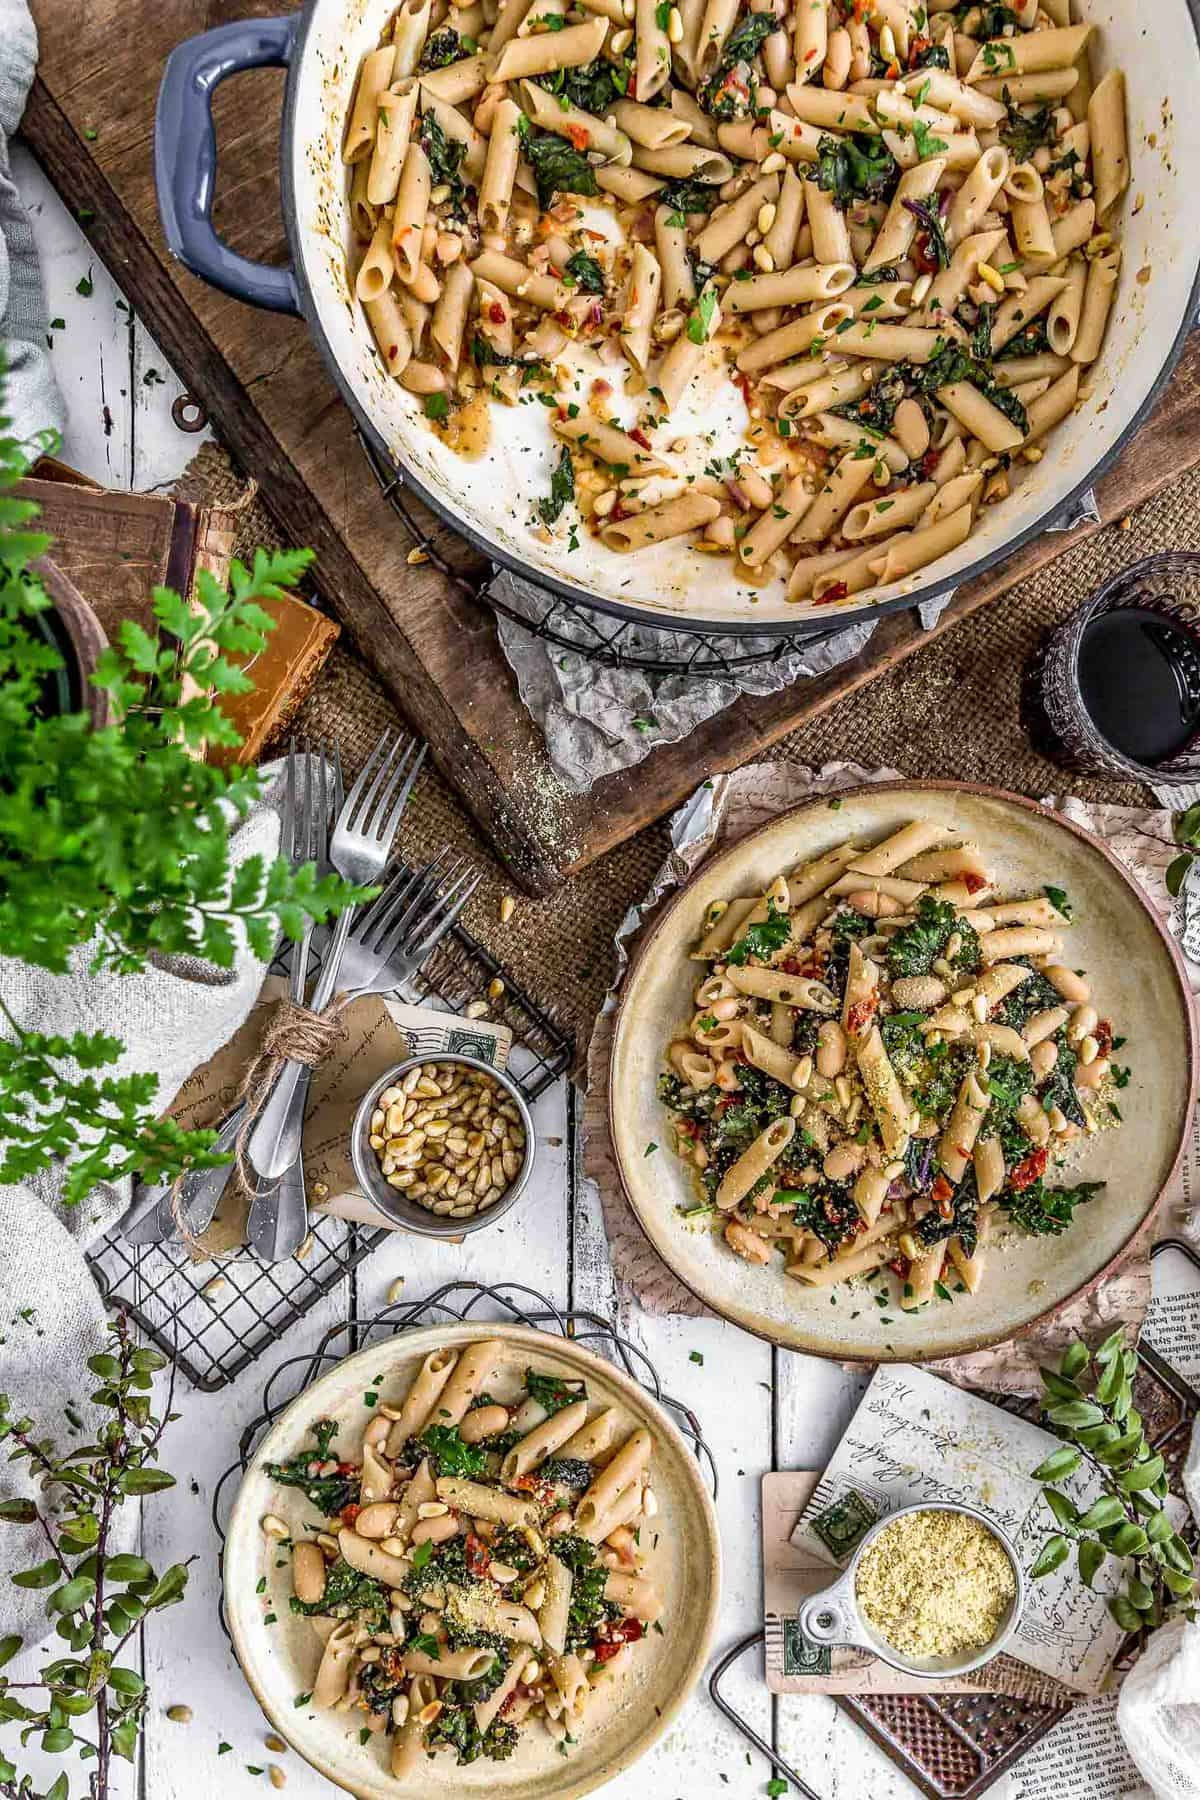 Tablescape of Italian Pasta and Kale